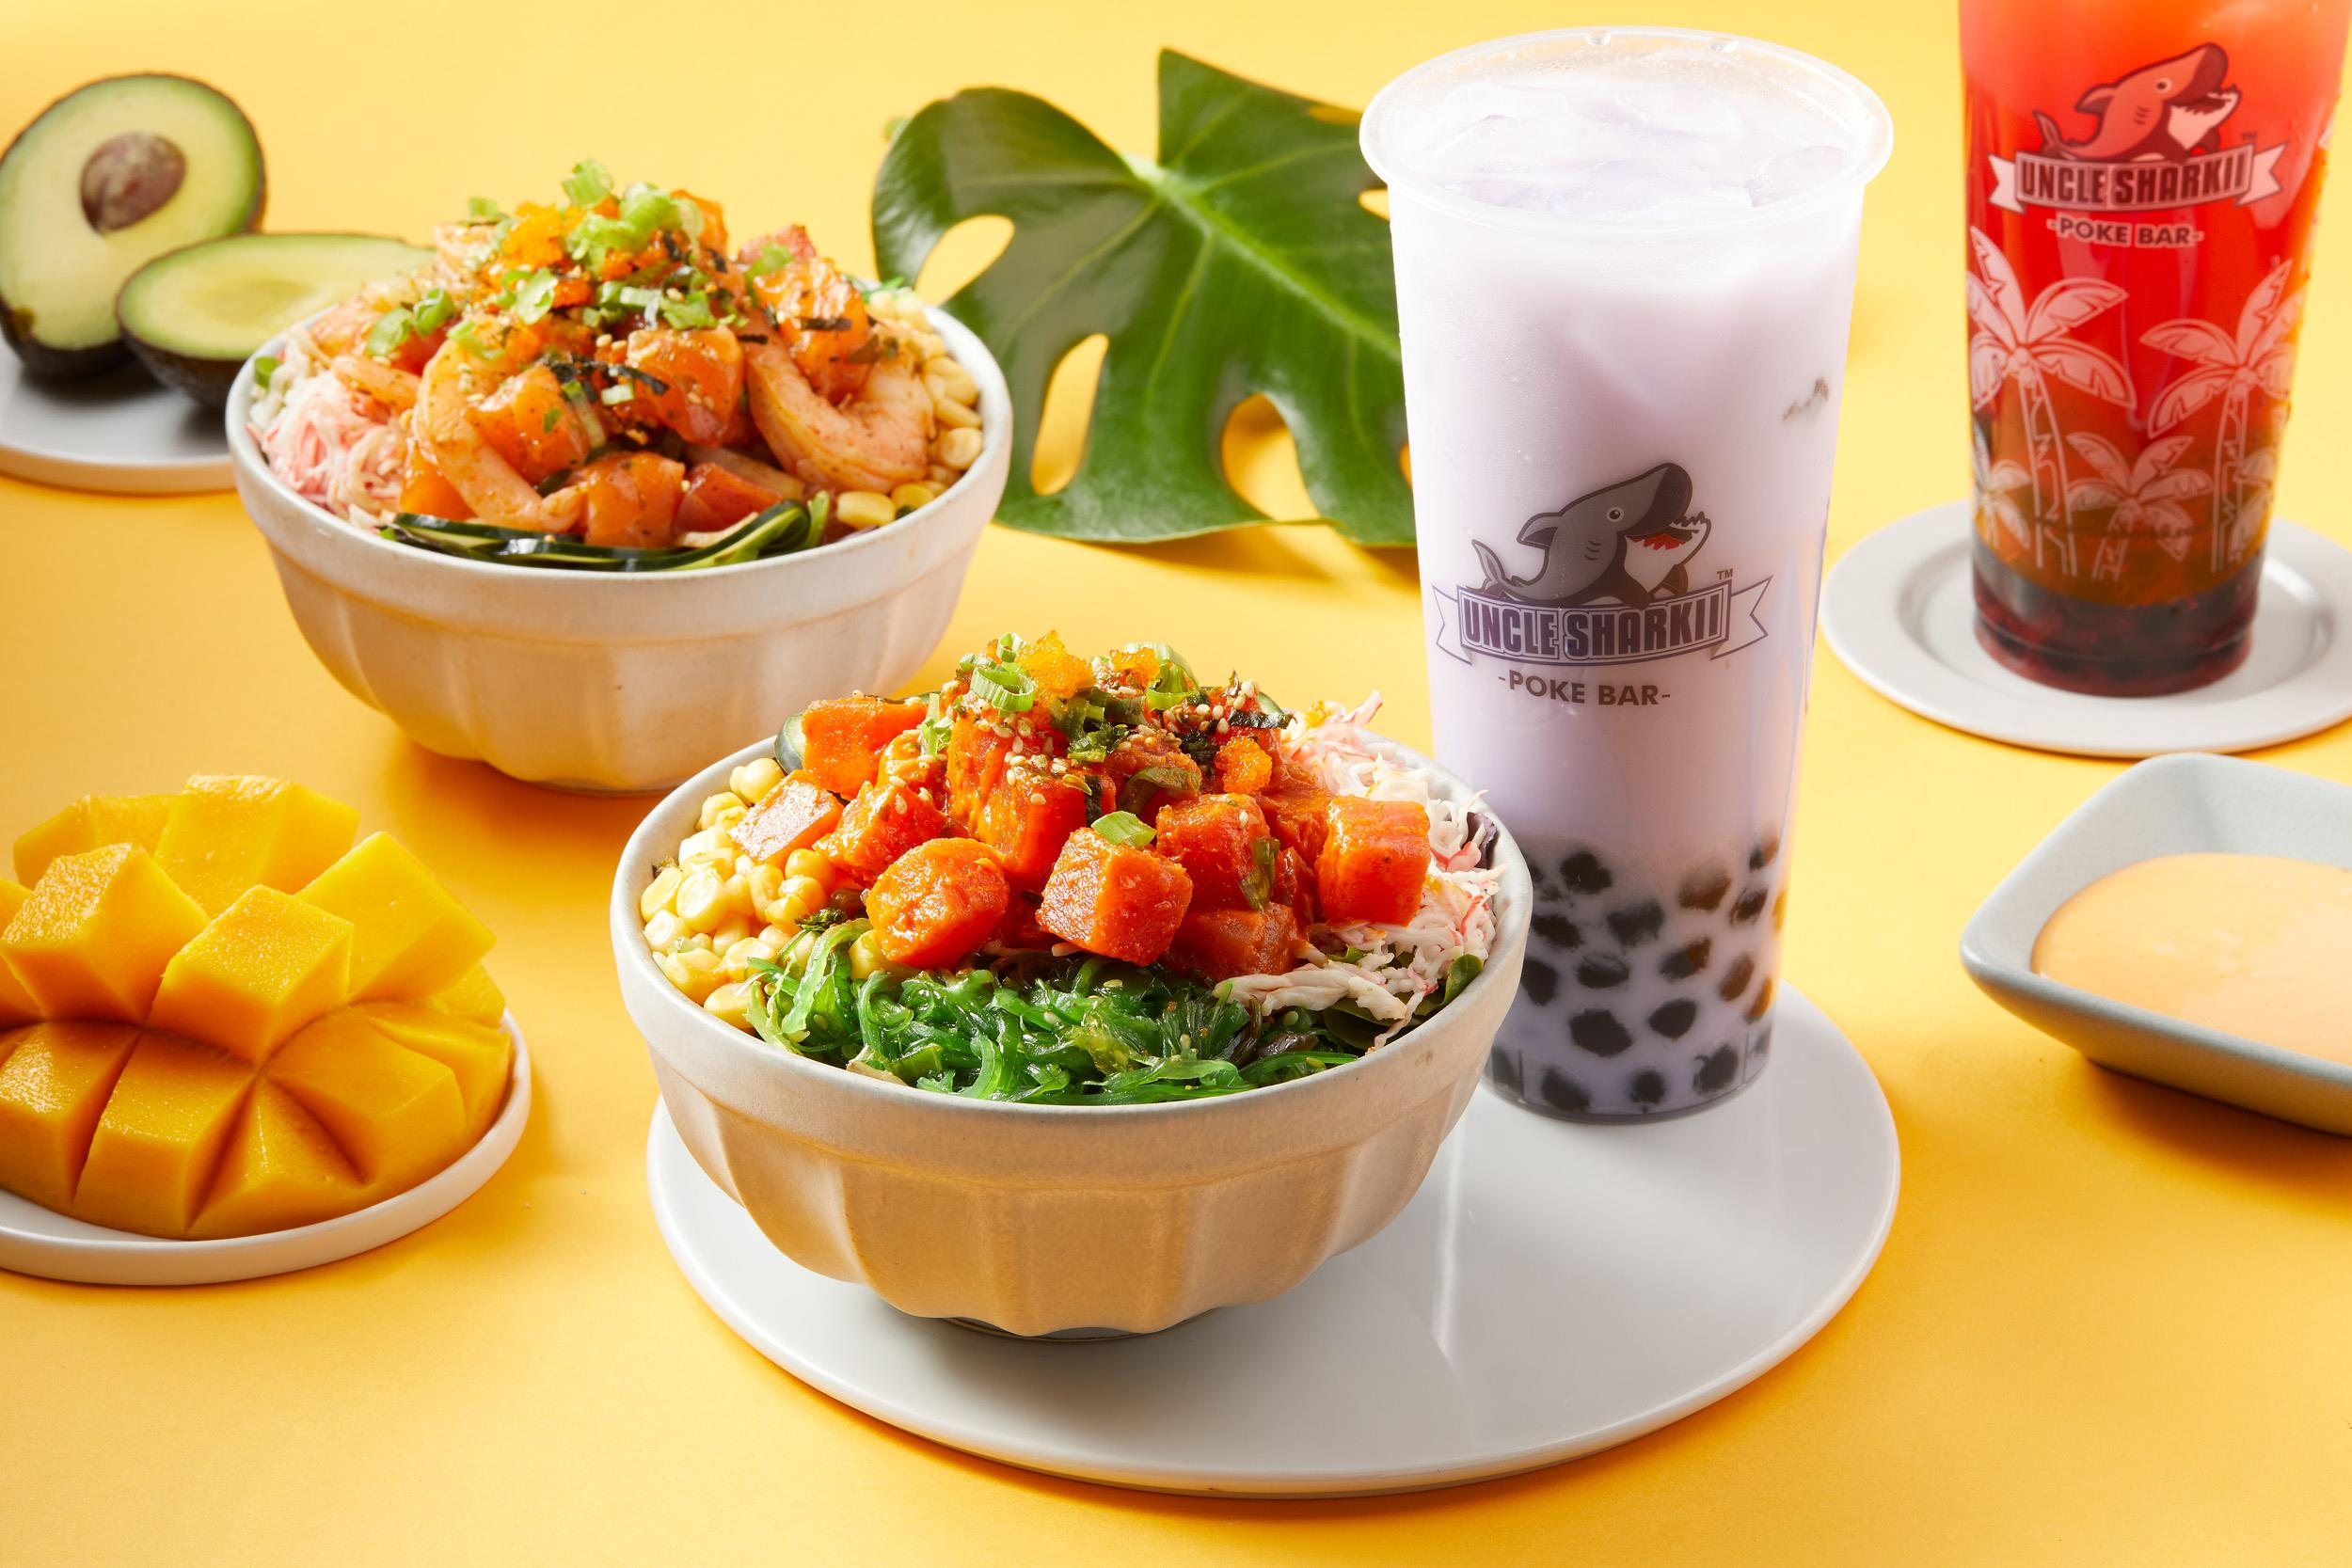 Two bowls of poke with a drink, mango, avocado and a tropical leaf